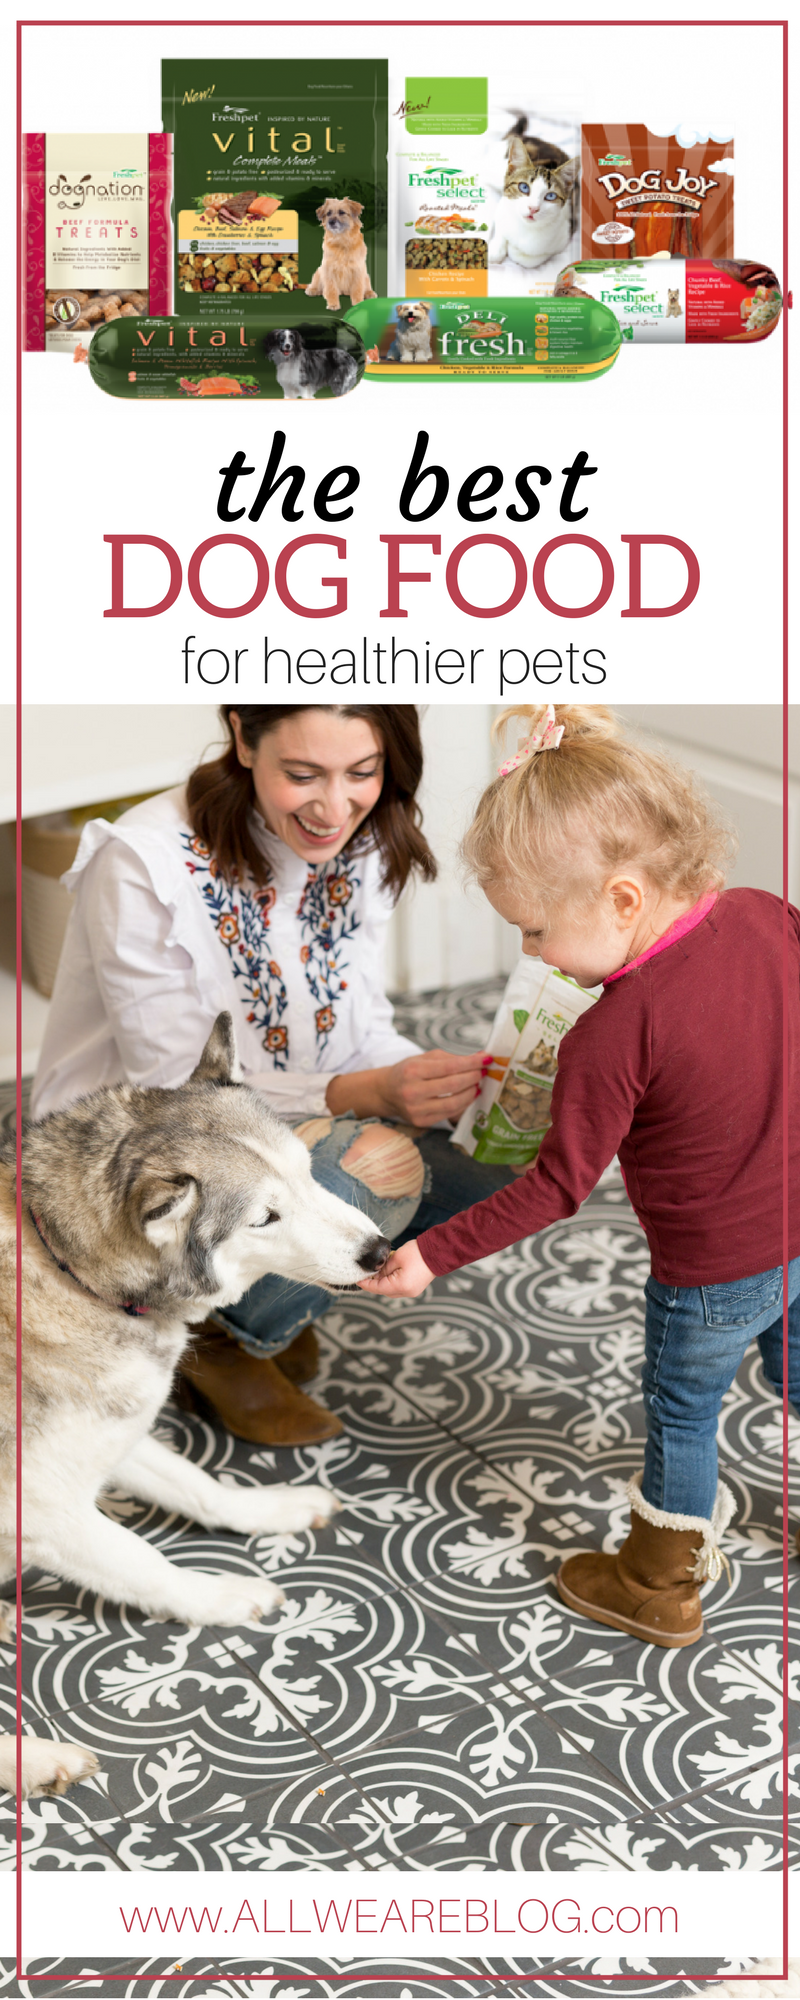 the best dog food for healthier pets